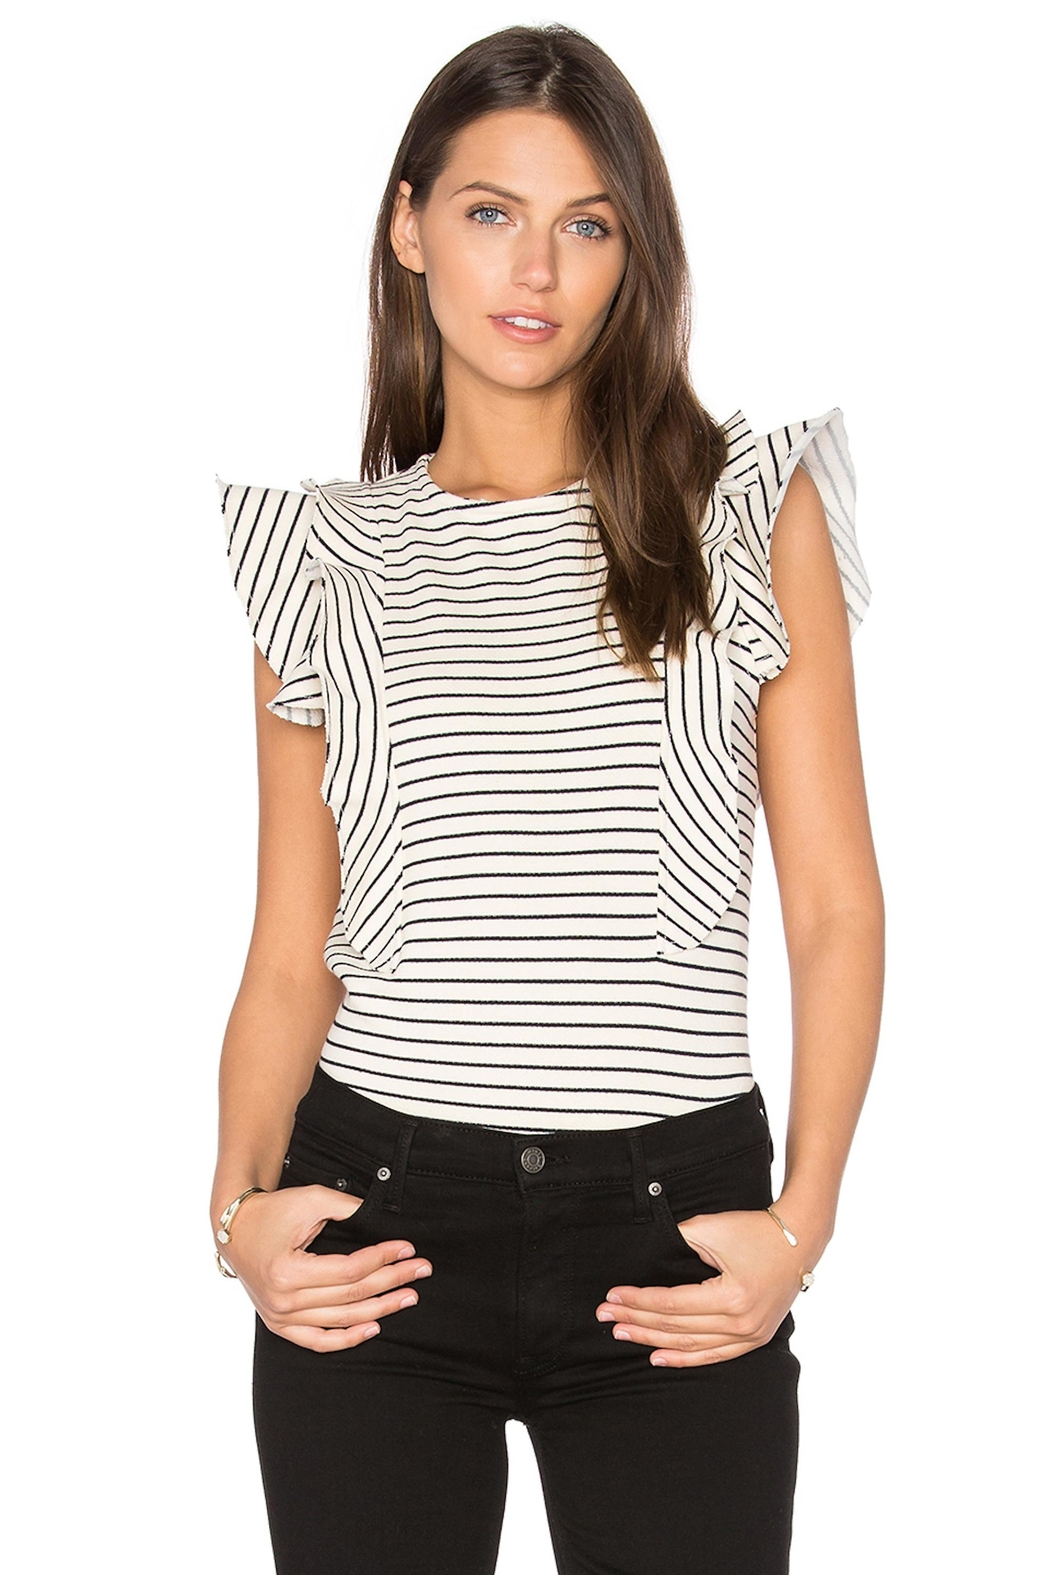 McGuire Ruffle Striped Top - Main Image